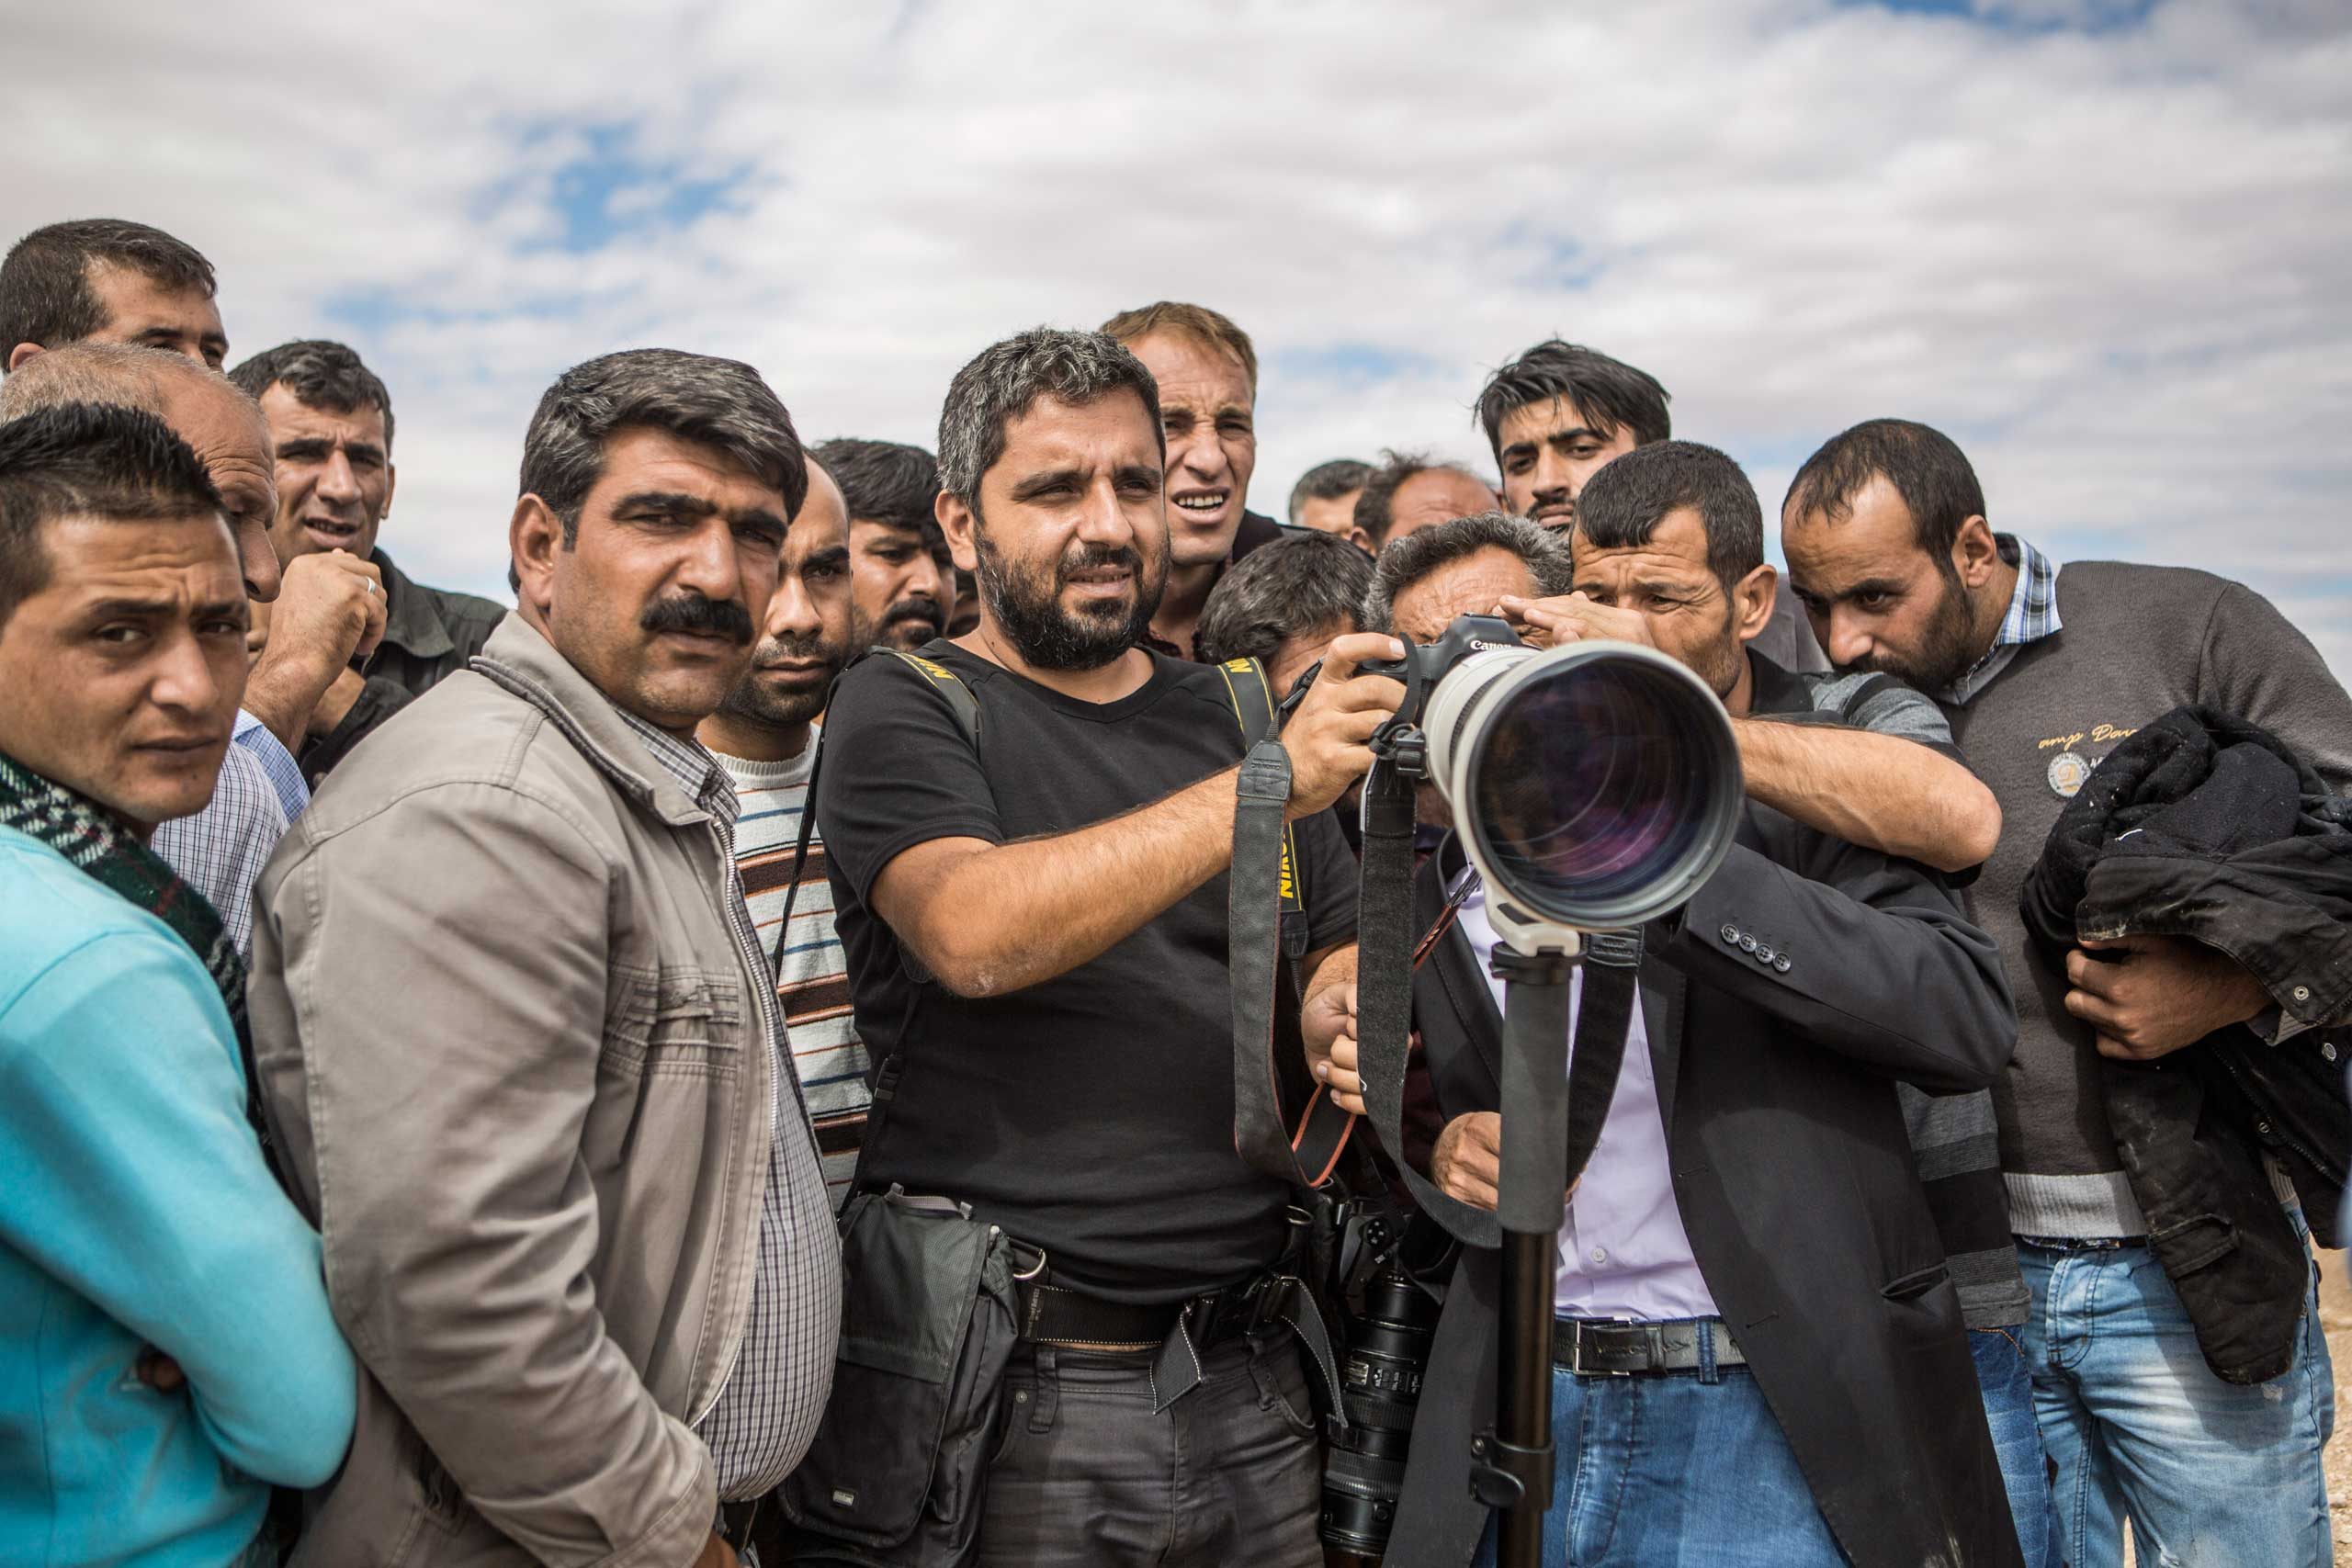 Bulent Kilic (center), TIME's 2014 Wire Photographer of the Year, in Turkey.